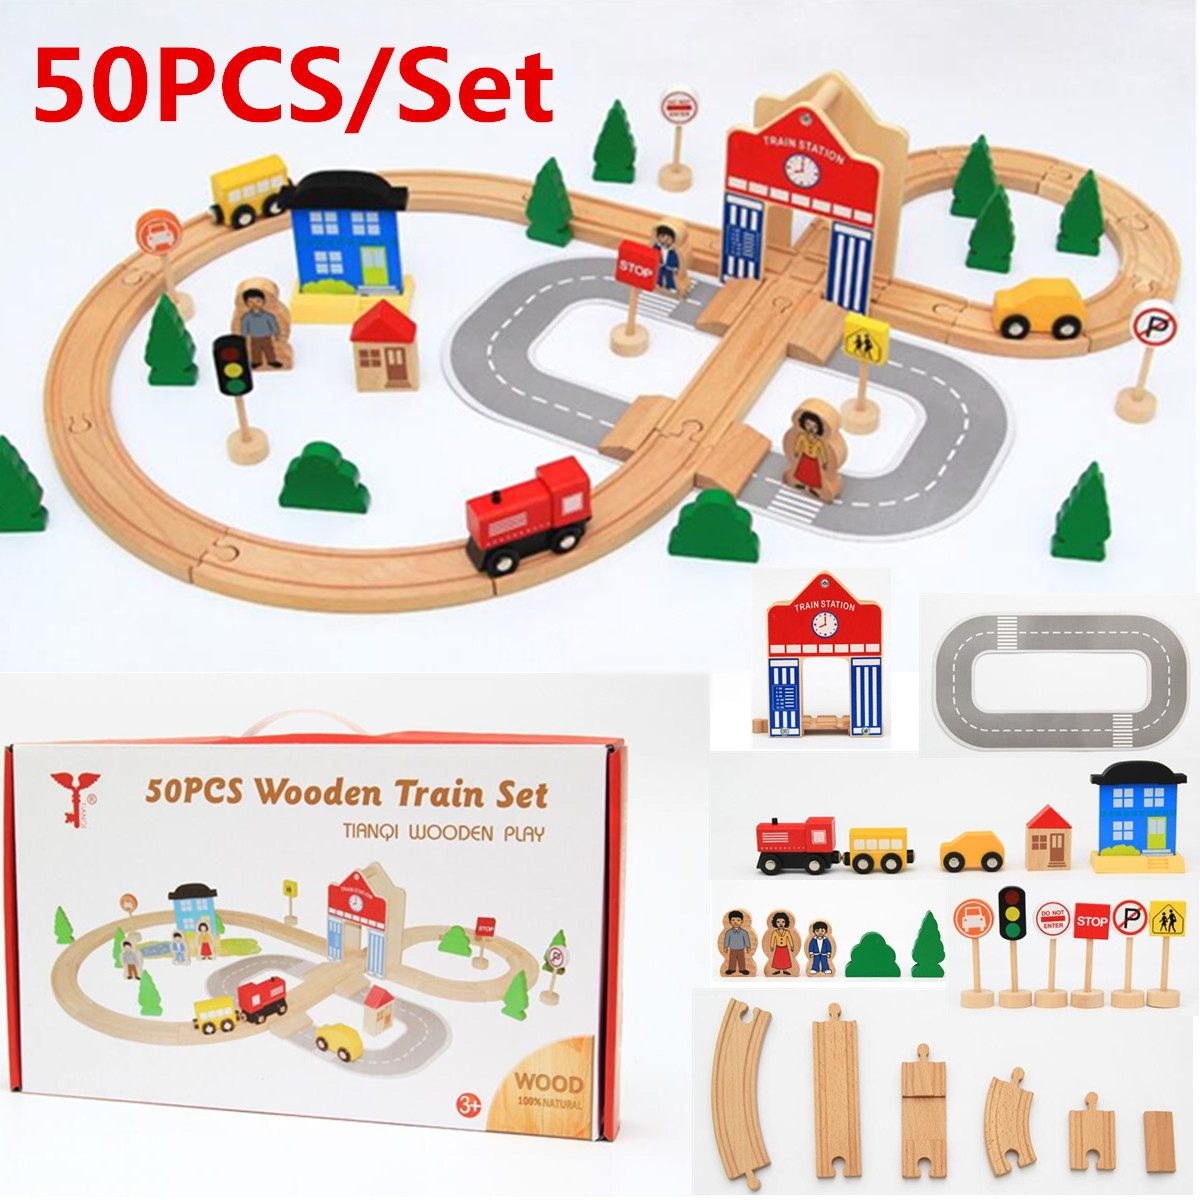 100% Quality 50pcs Wooden Train Track Railway Bridge Electric Train Track Set Magnetic Racing Track Blocks Vehicles Kids Toys Children Gifts Crazy Price